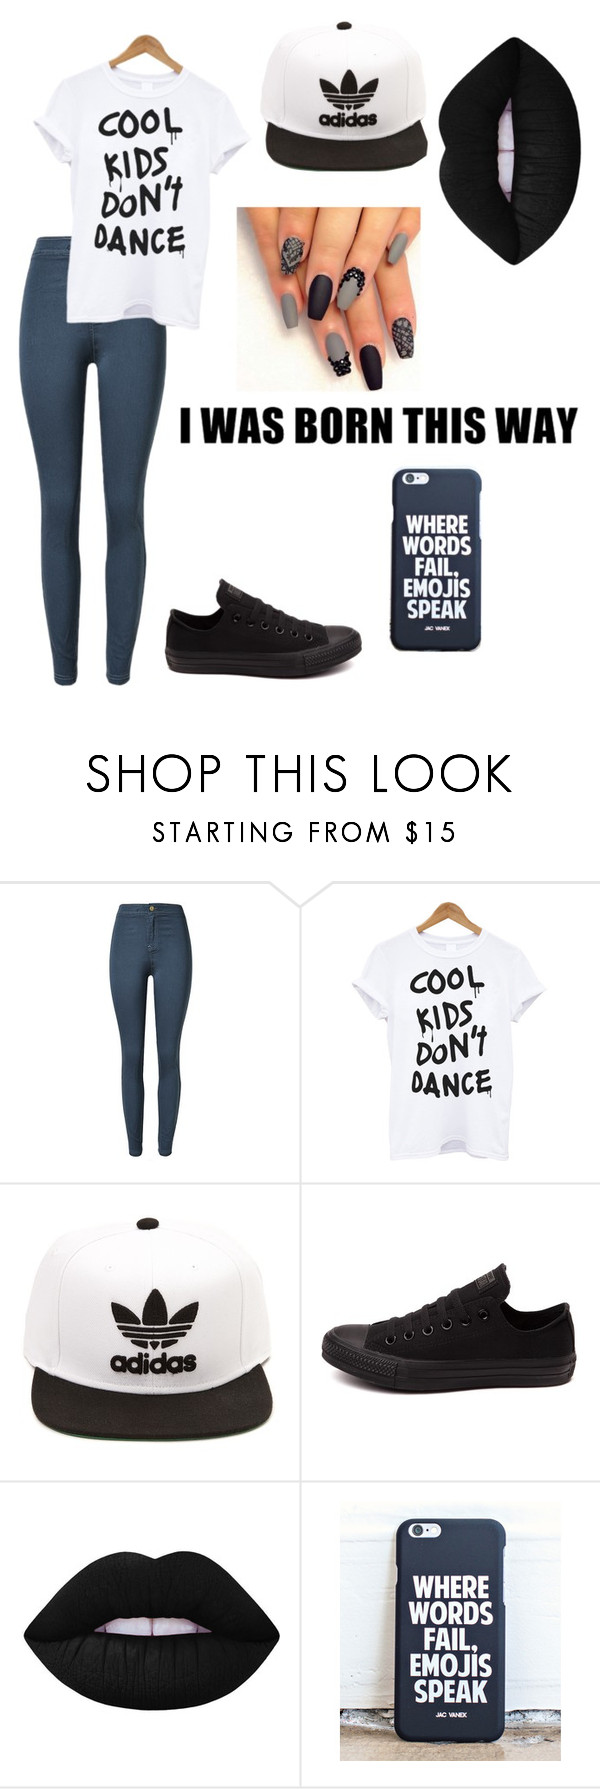 Untitled #185 | Clothes design, Outfit accessories, Adidas ...